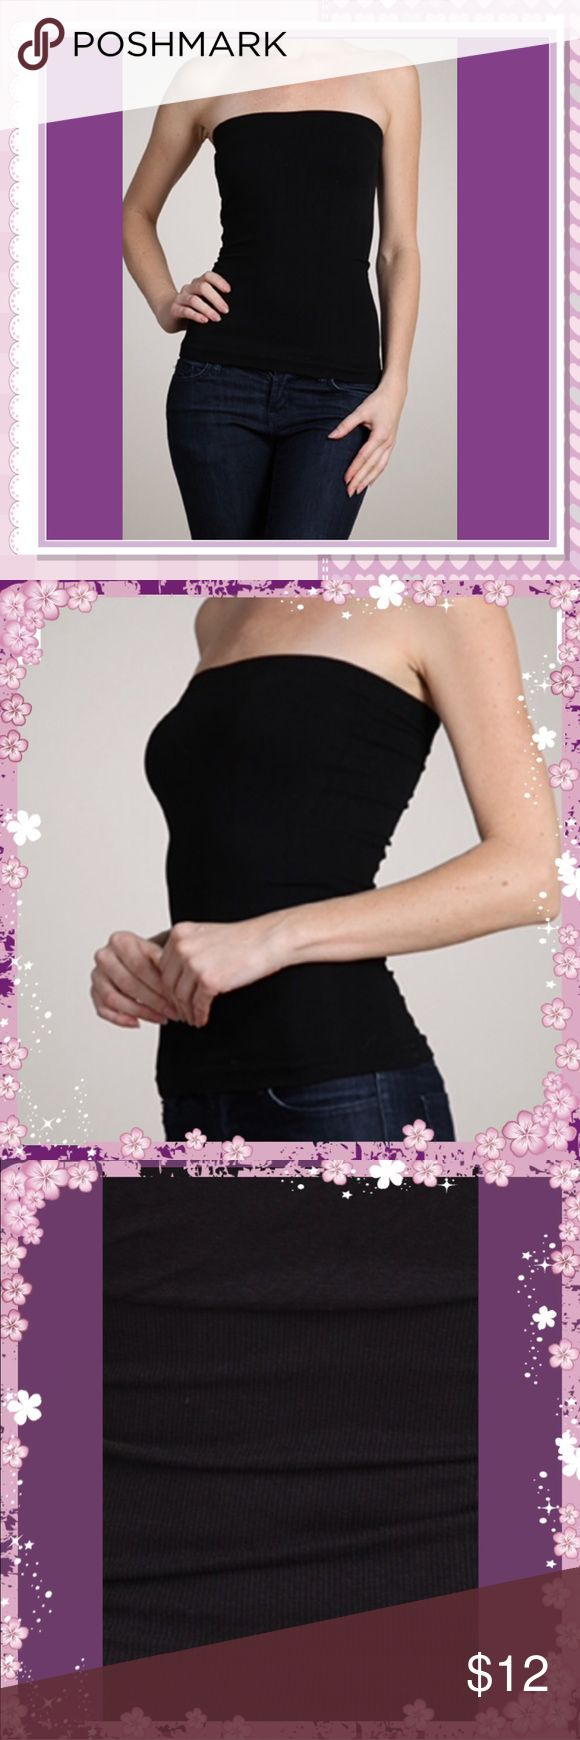 🖤Black Seamless Strapless Tube Top 🖤Black Seamless Strapless Tube Top  • Ribbed (thin) see photo 3 • 92% Nylon 8% Spandex  •Stock photos 1,2,4 •Straight from vendor, no tag but in a sealed bag. Tops Camisoles